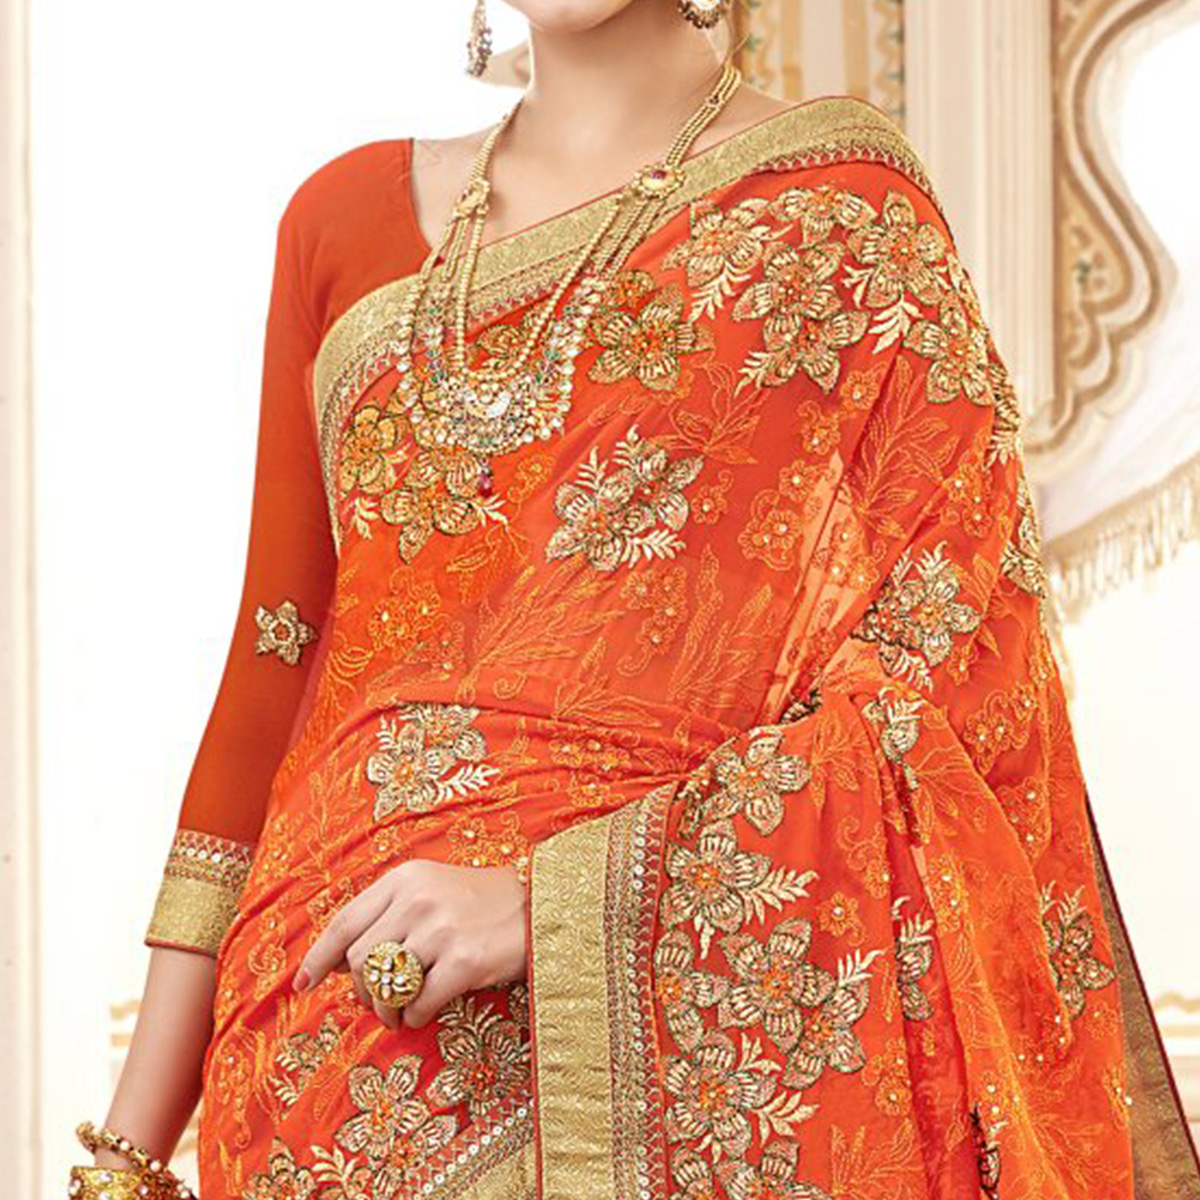 Ravishing Orange Colored Partywear Embroidered Faux Georgette Saree